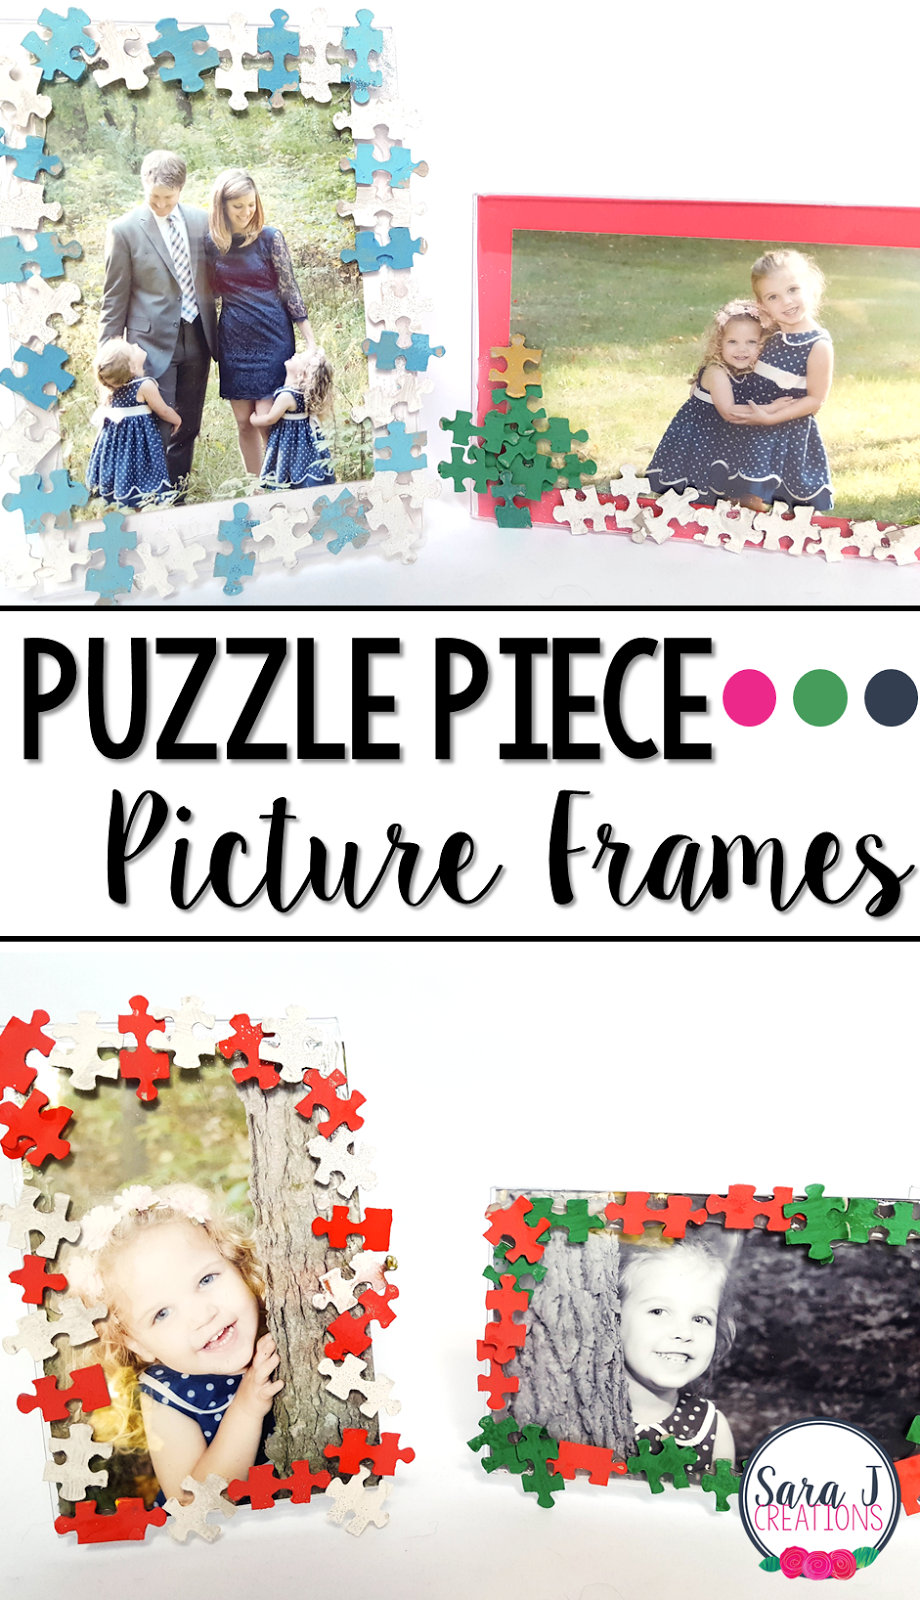 DIY Christmas Gift Ideas - Puzzle Piece Picture Frame | Sara J Creations